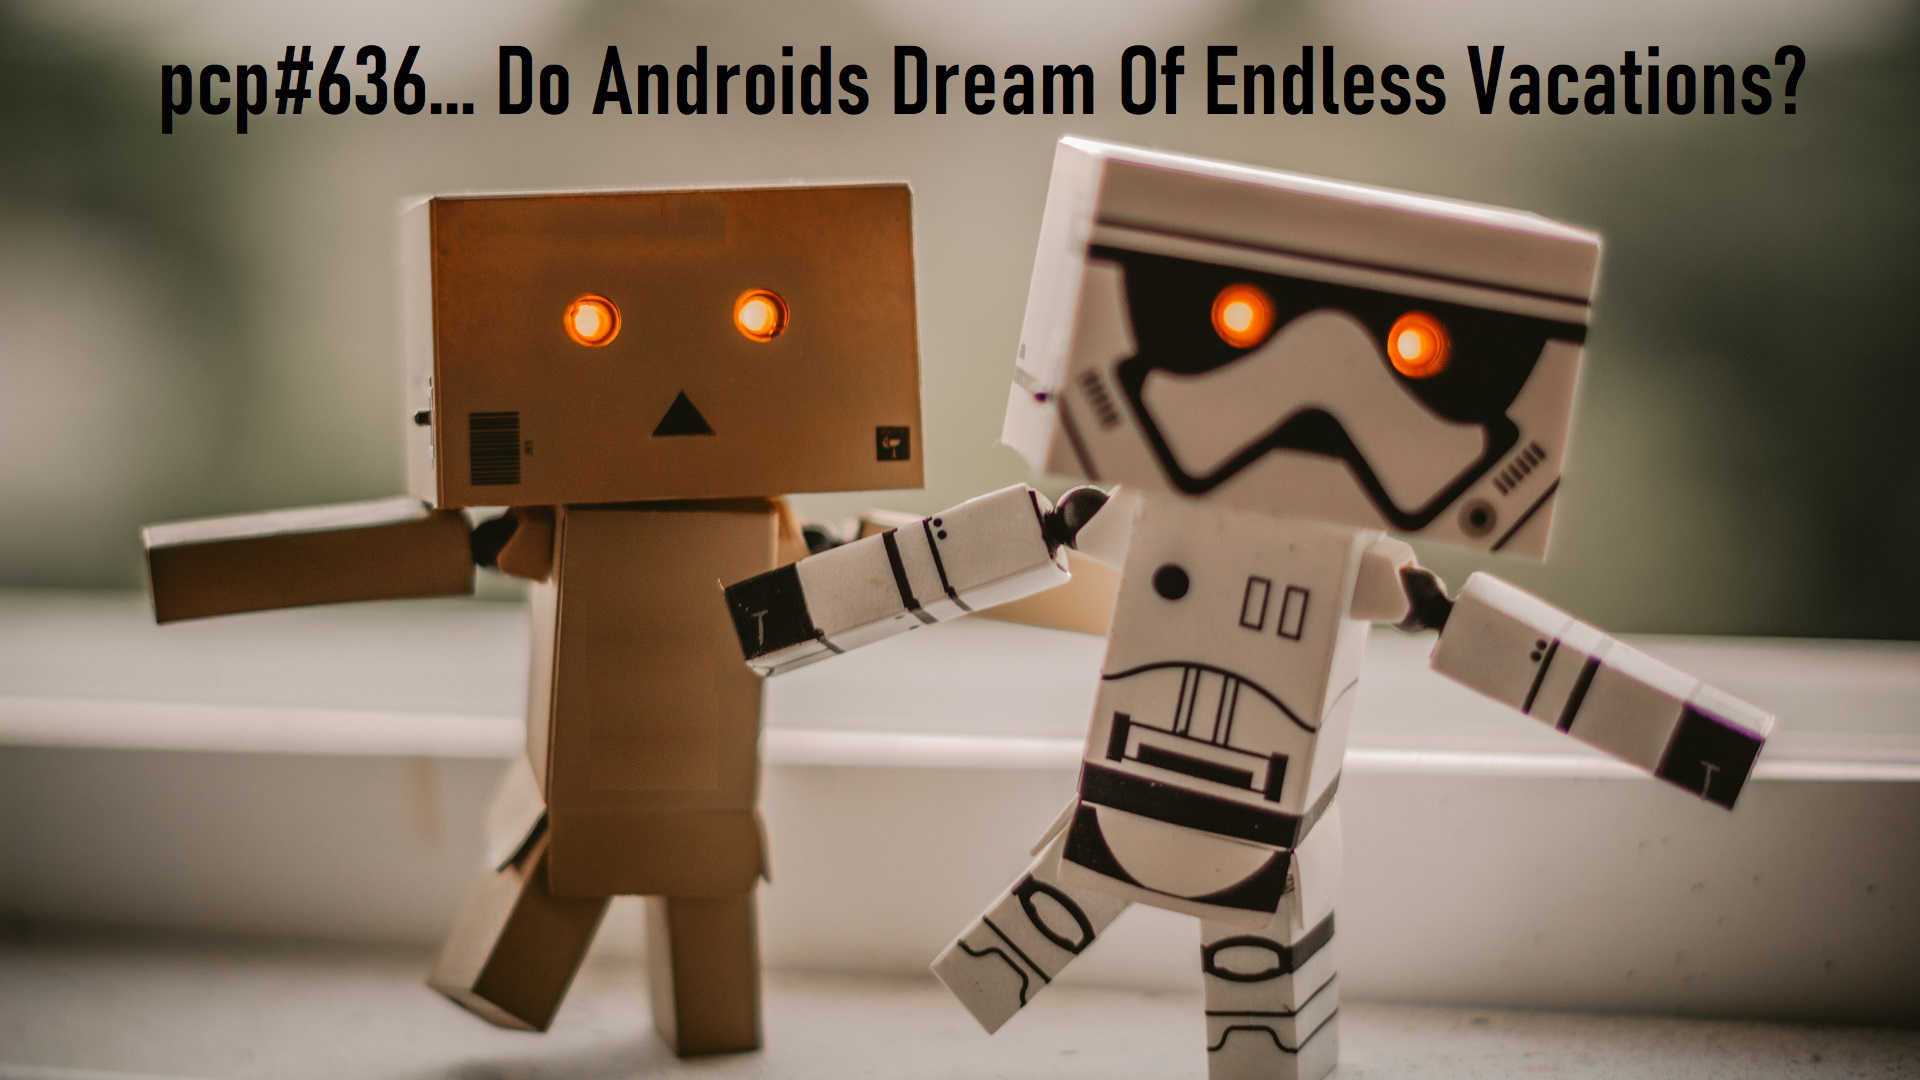 PCP#636... Do Androids Dream Of Endless Vacations?....